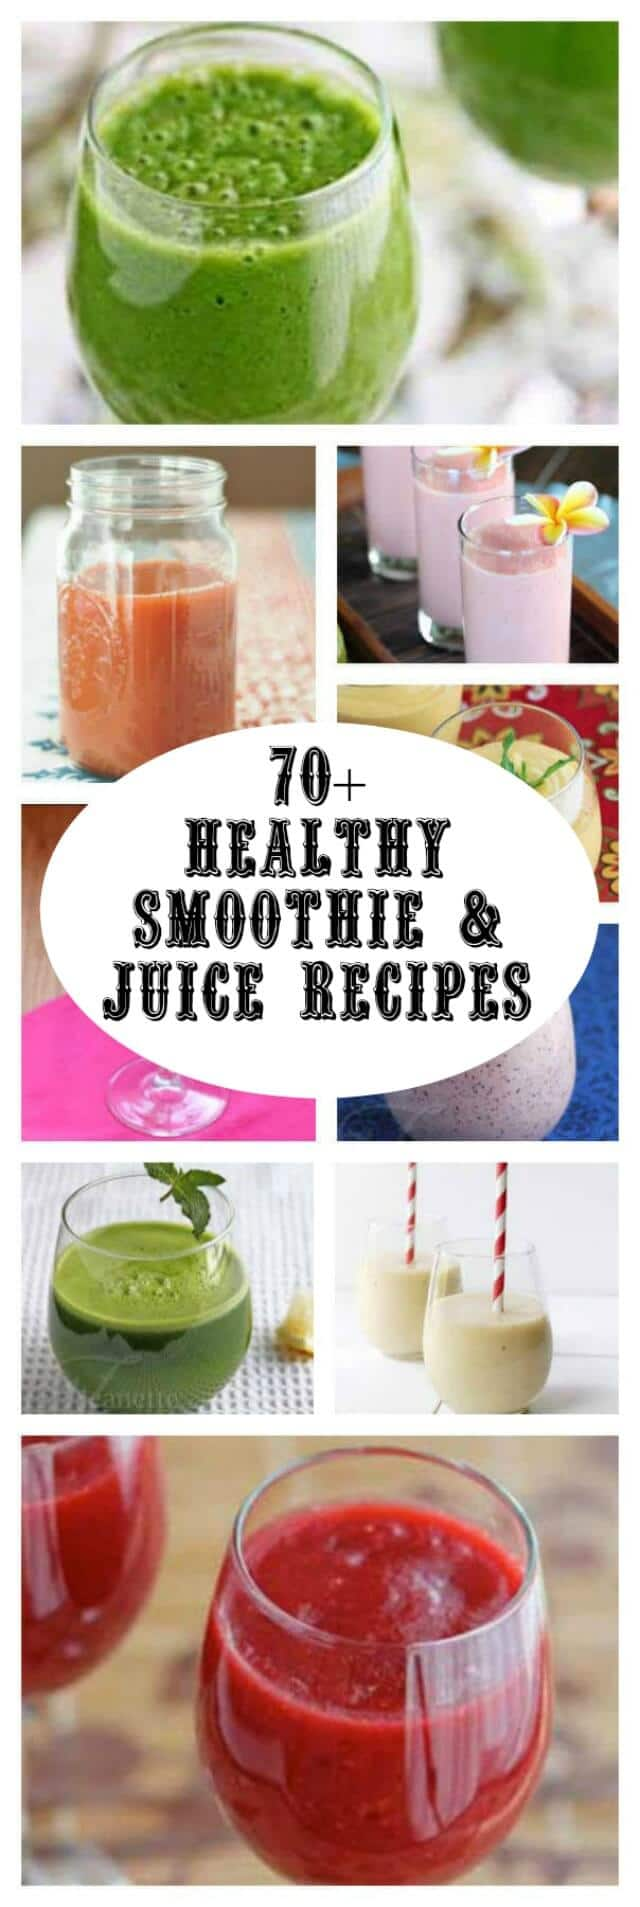 Healthy Smoothie and Juice Recipes - over 70 healthy smoothie and juice recipes to start the New Year off right!